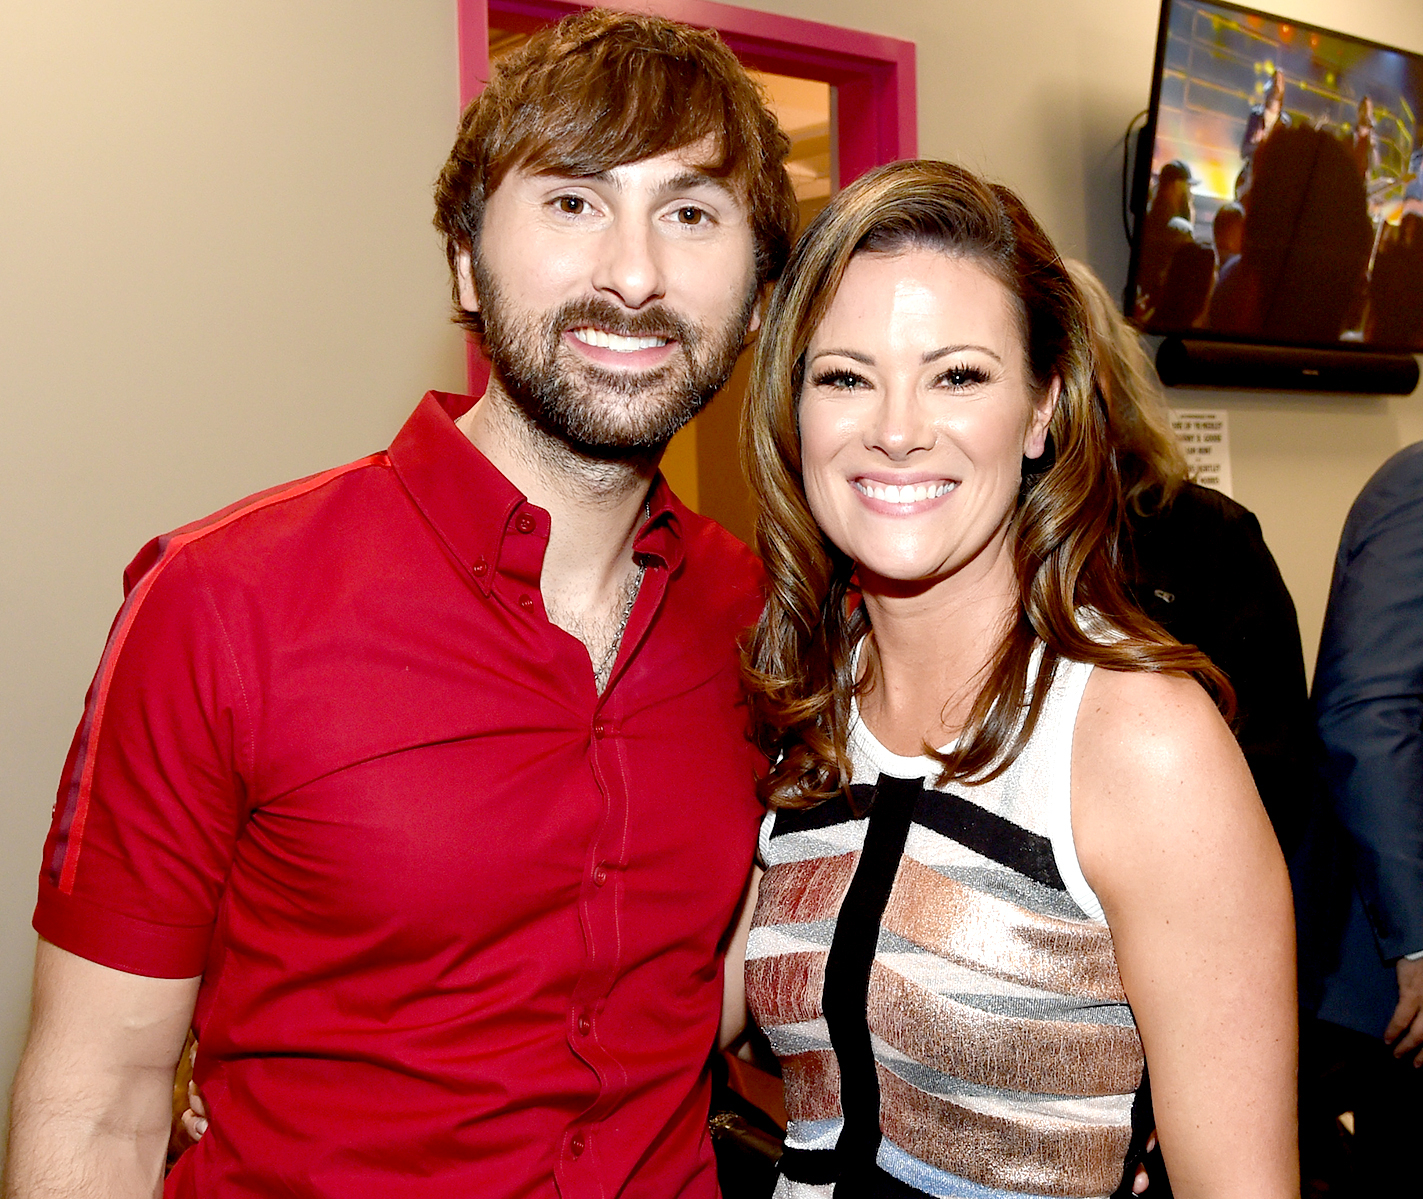 Dave Haywood of the music group Lady Antebellum and Kelli Cashiola attend the 52nd Academy Of Country Music Awards at T-Mobile Arena on April 2, 2017 in Las Vegas, Nevada.